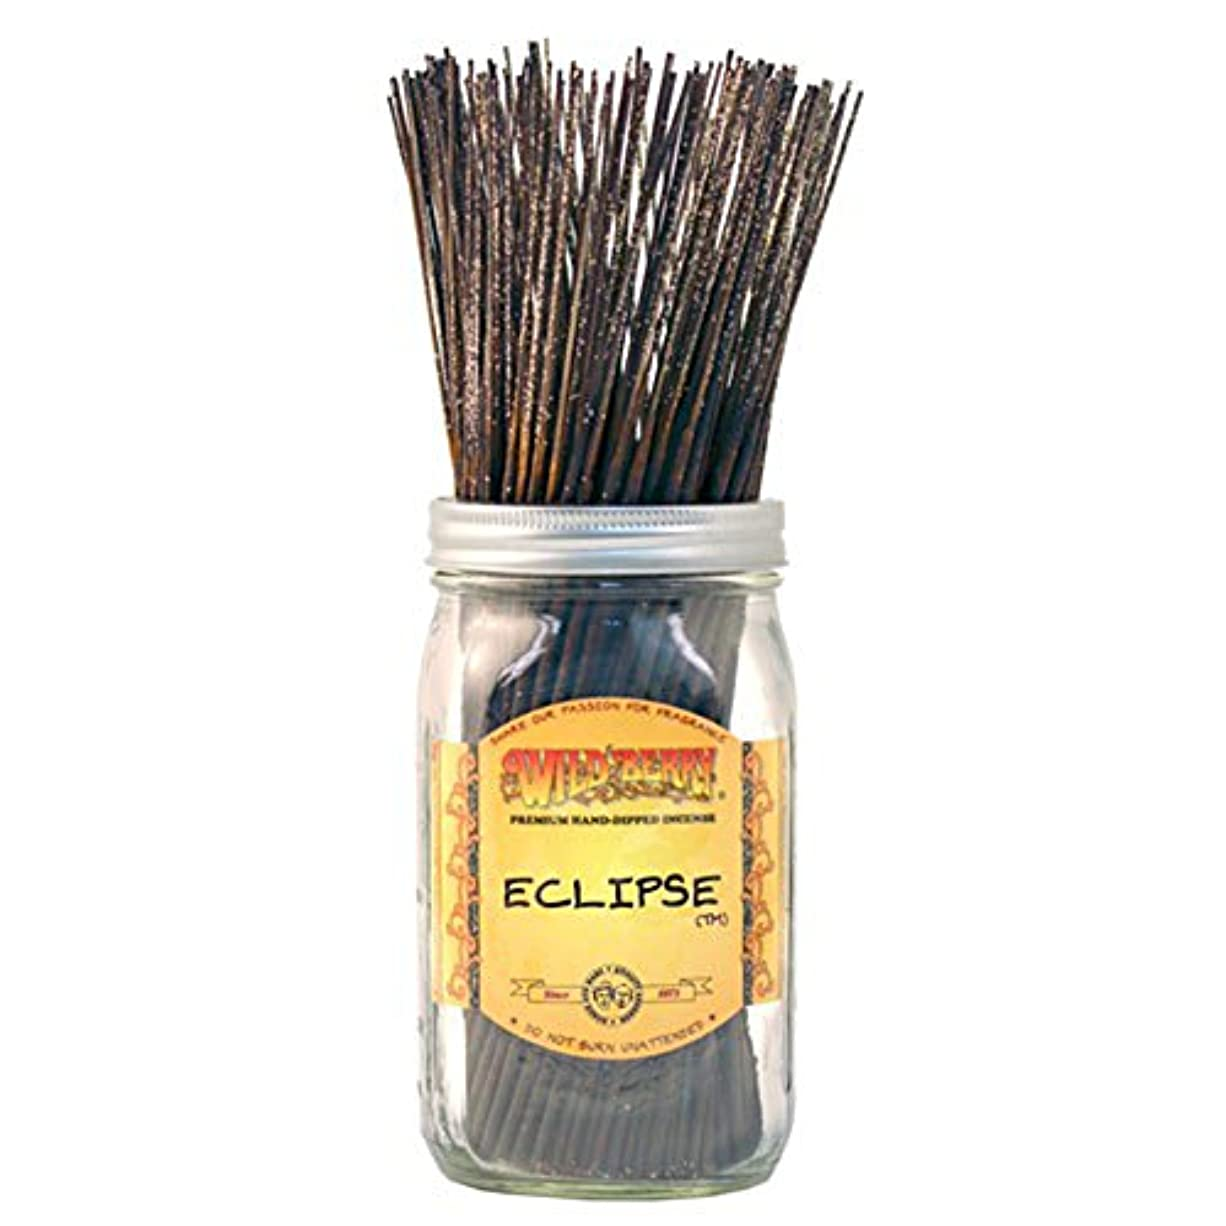 Wild Berry Eclipse, Highly Fragranced Incense Sticksバルクパック、100ピース、11インチ